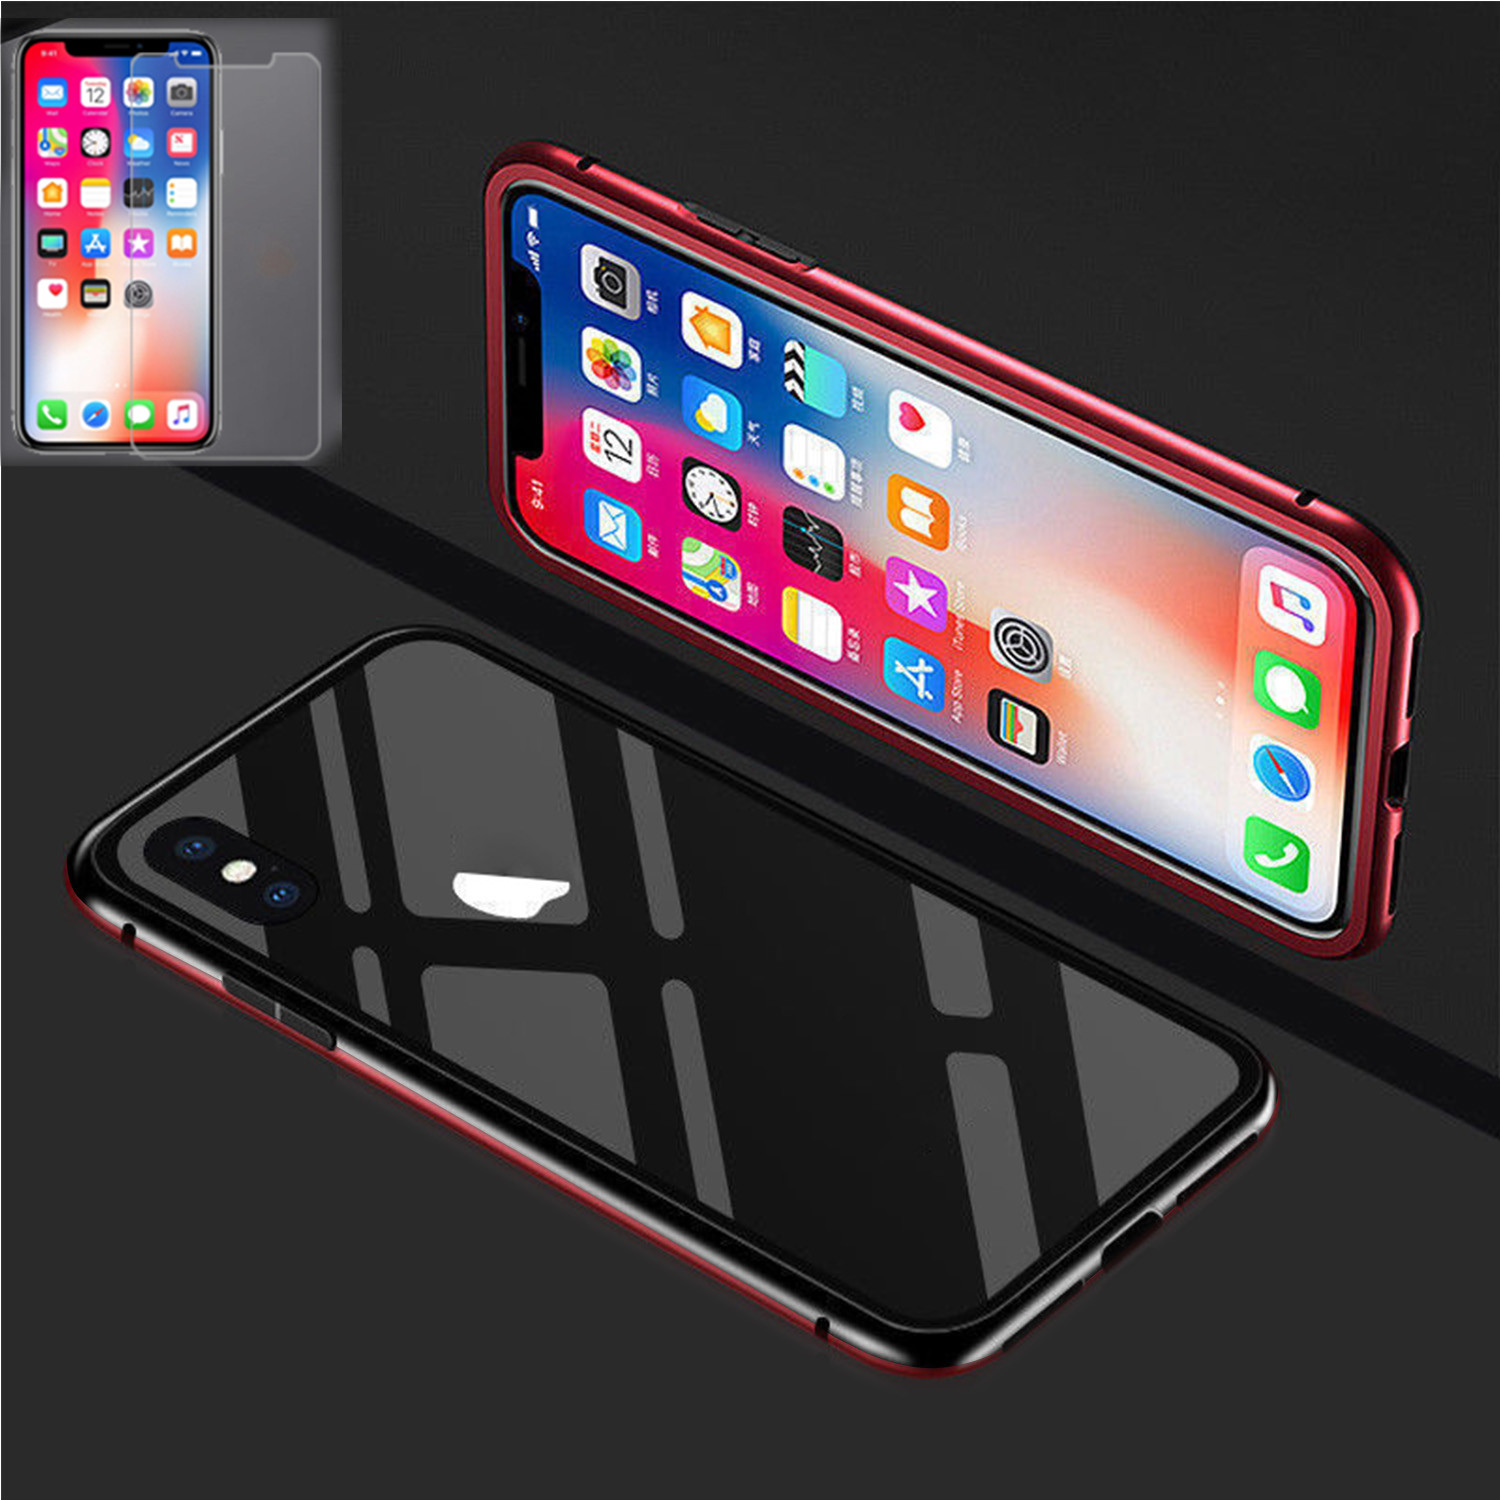 Magnetic-Adsorption-Metal-Case-For-iPhone-8-Plus-XR-XS-Max-Tempered-Glass-Cover